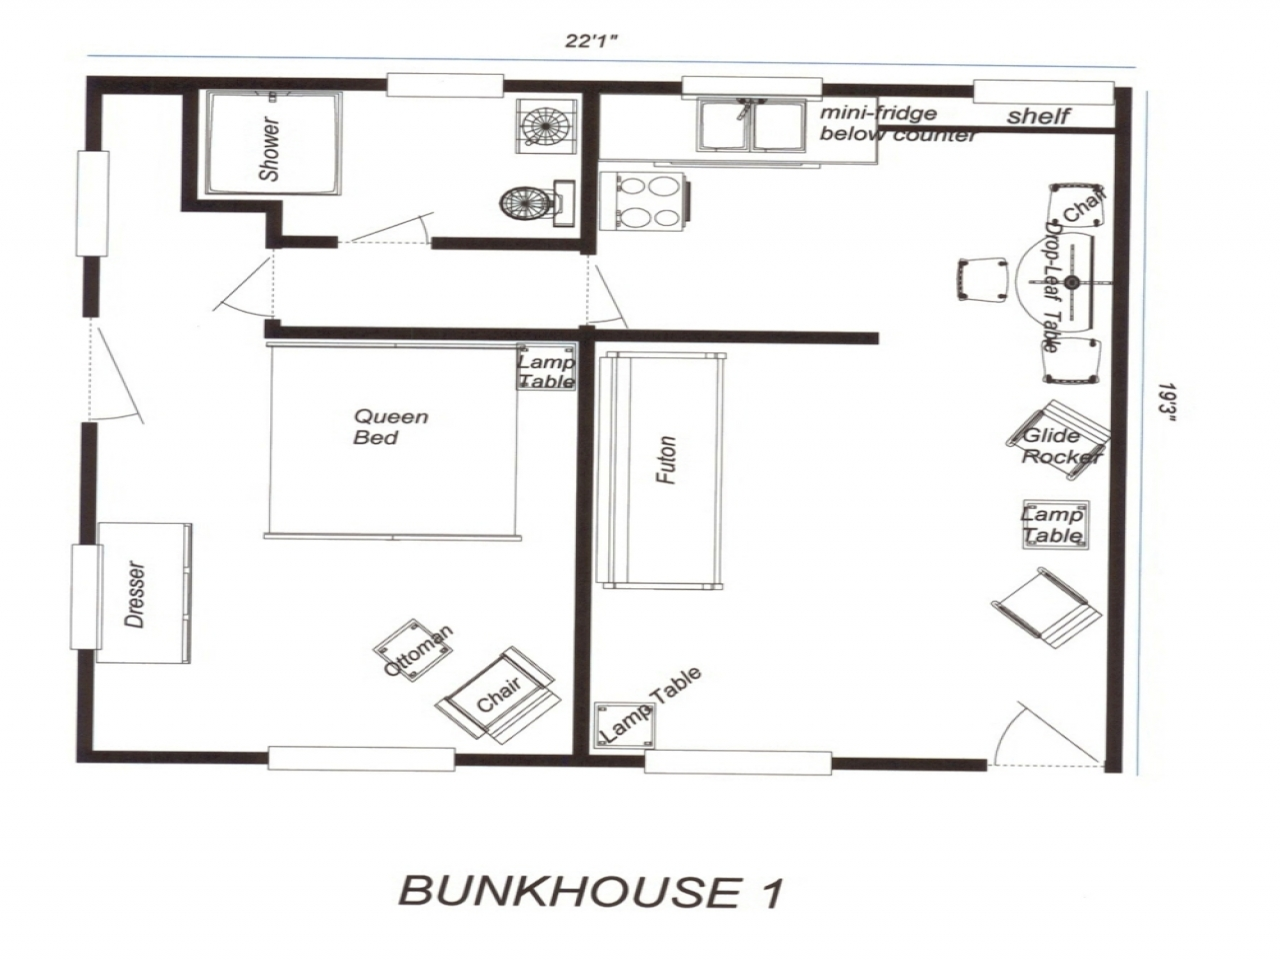 Bunkhouse Floor Plans Rustic Cowboy Bunkhouse Plans